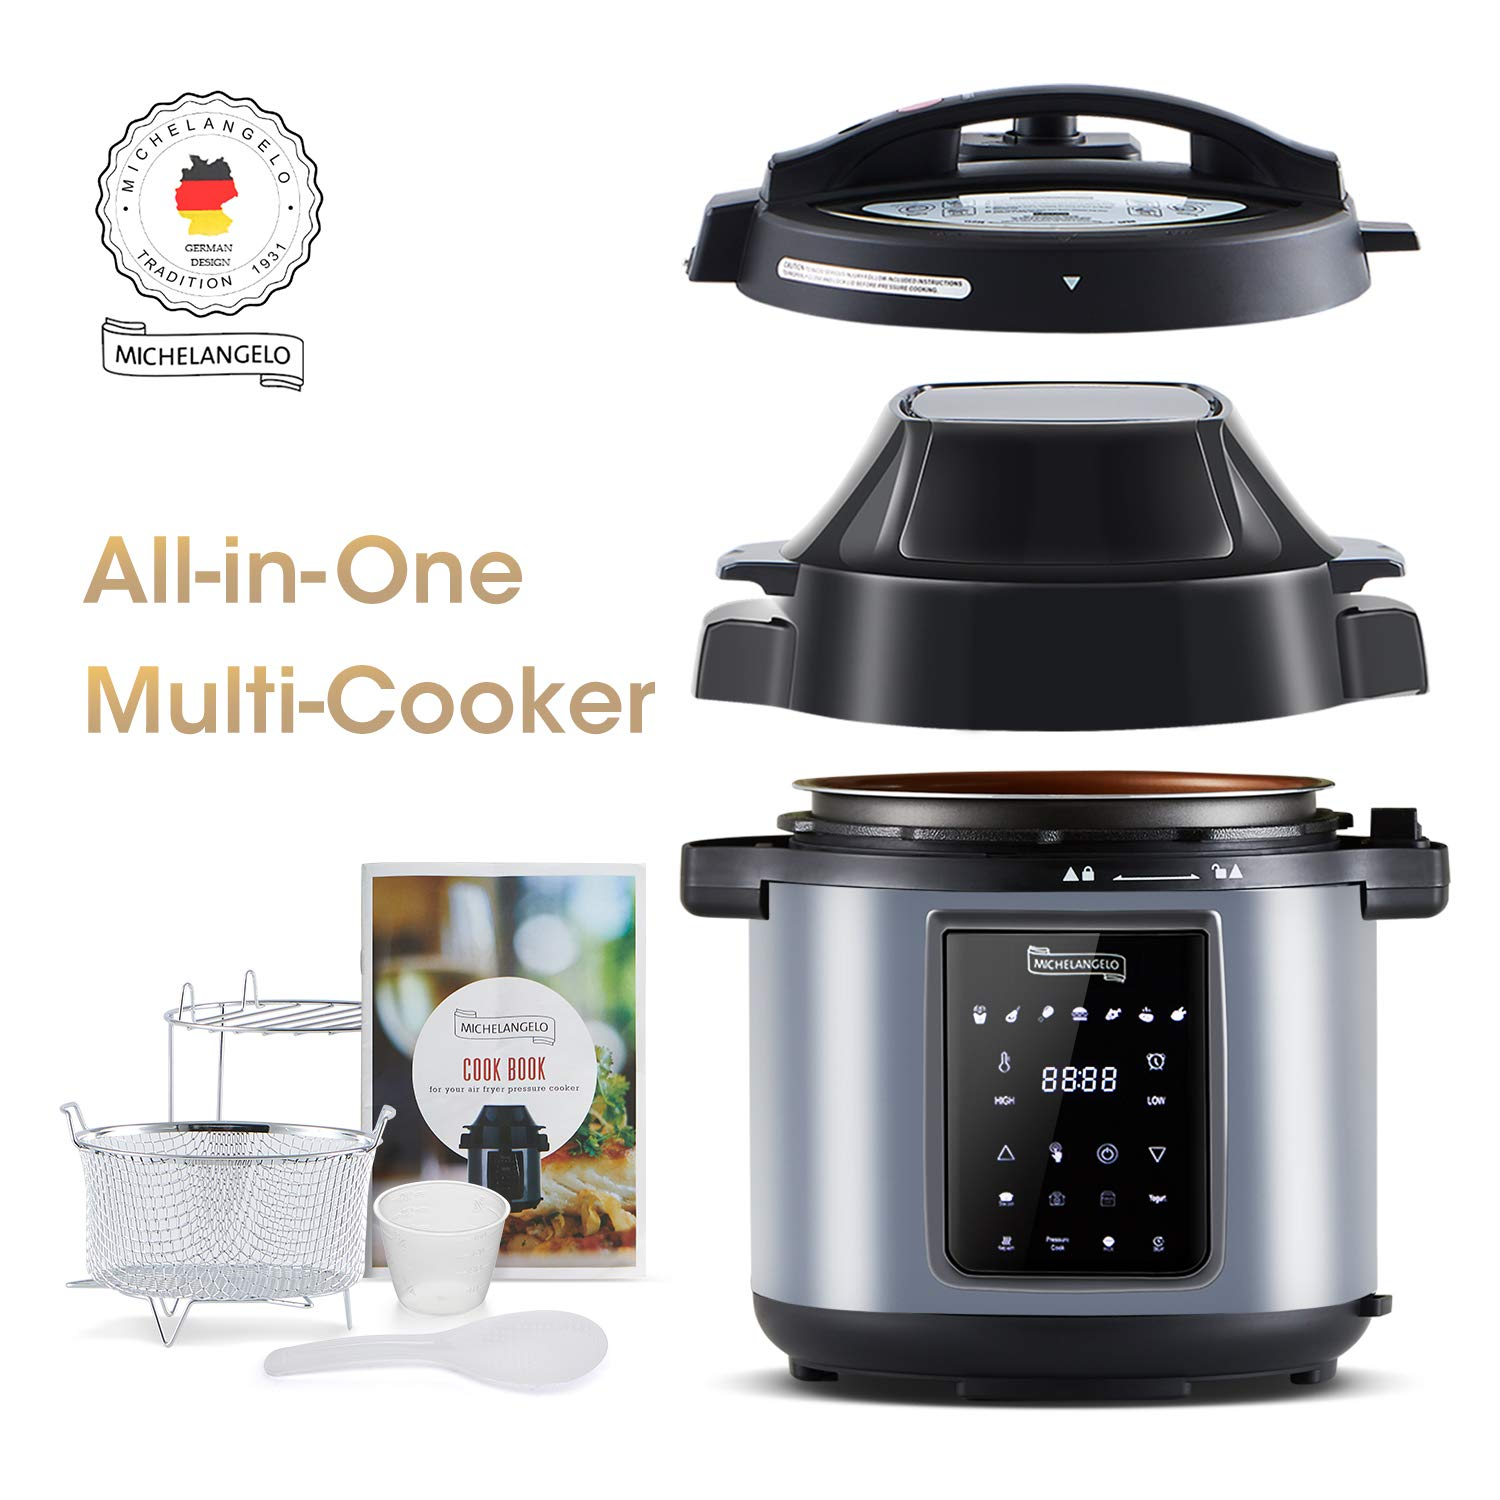 MICHELANGELO 6.5 QT Pressure Cooker Air Fryer Combo, All-in-1 Pressure Fryer with Two Detachable Lids, Steamer Basket, Roast Rack And Free Recipe Book - Metallic Black